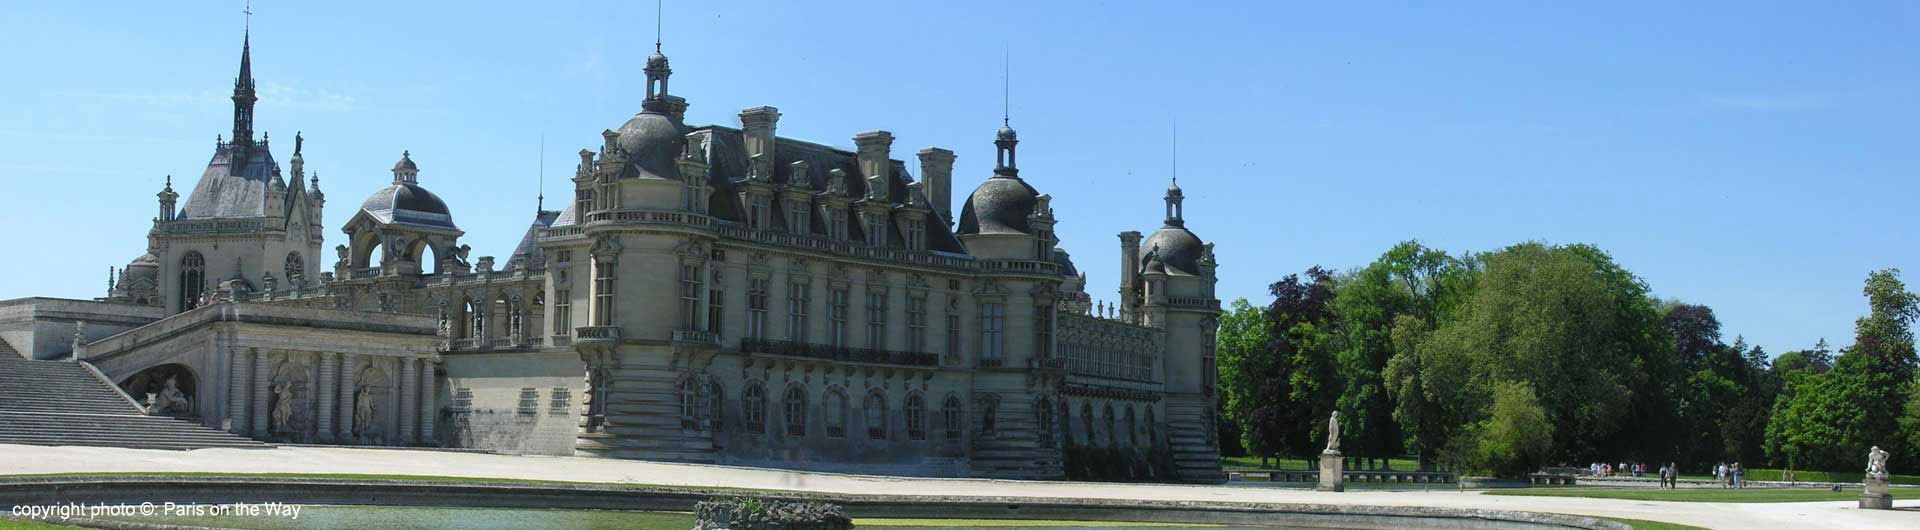 EL PALACIO DE CHANTILLY